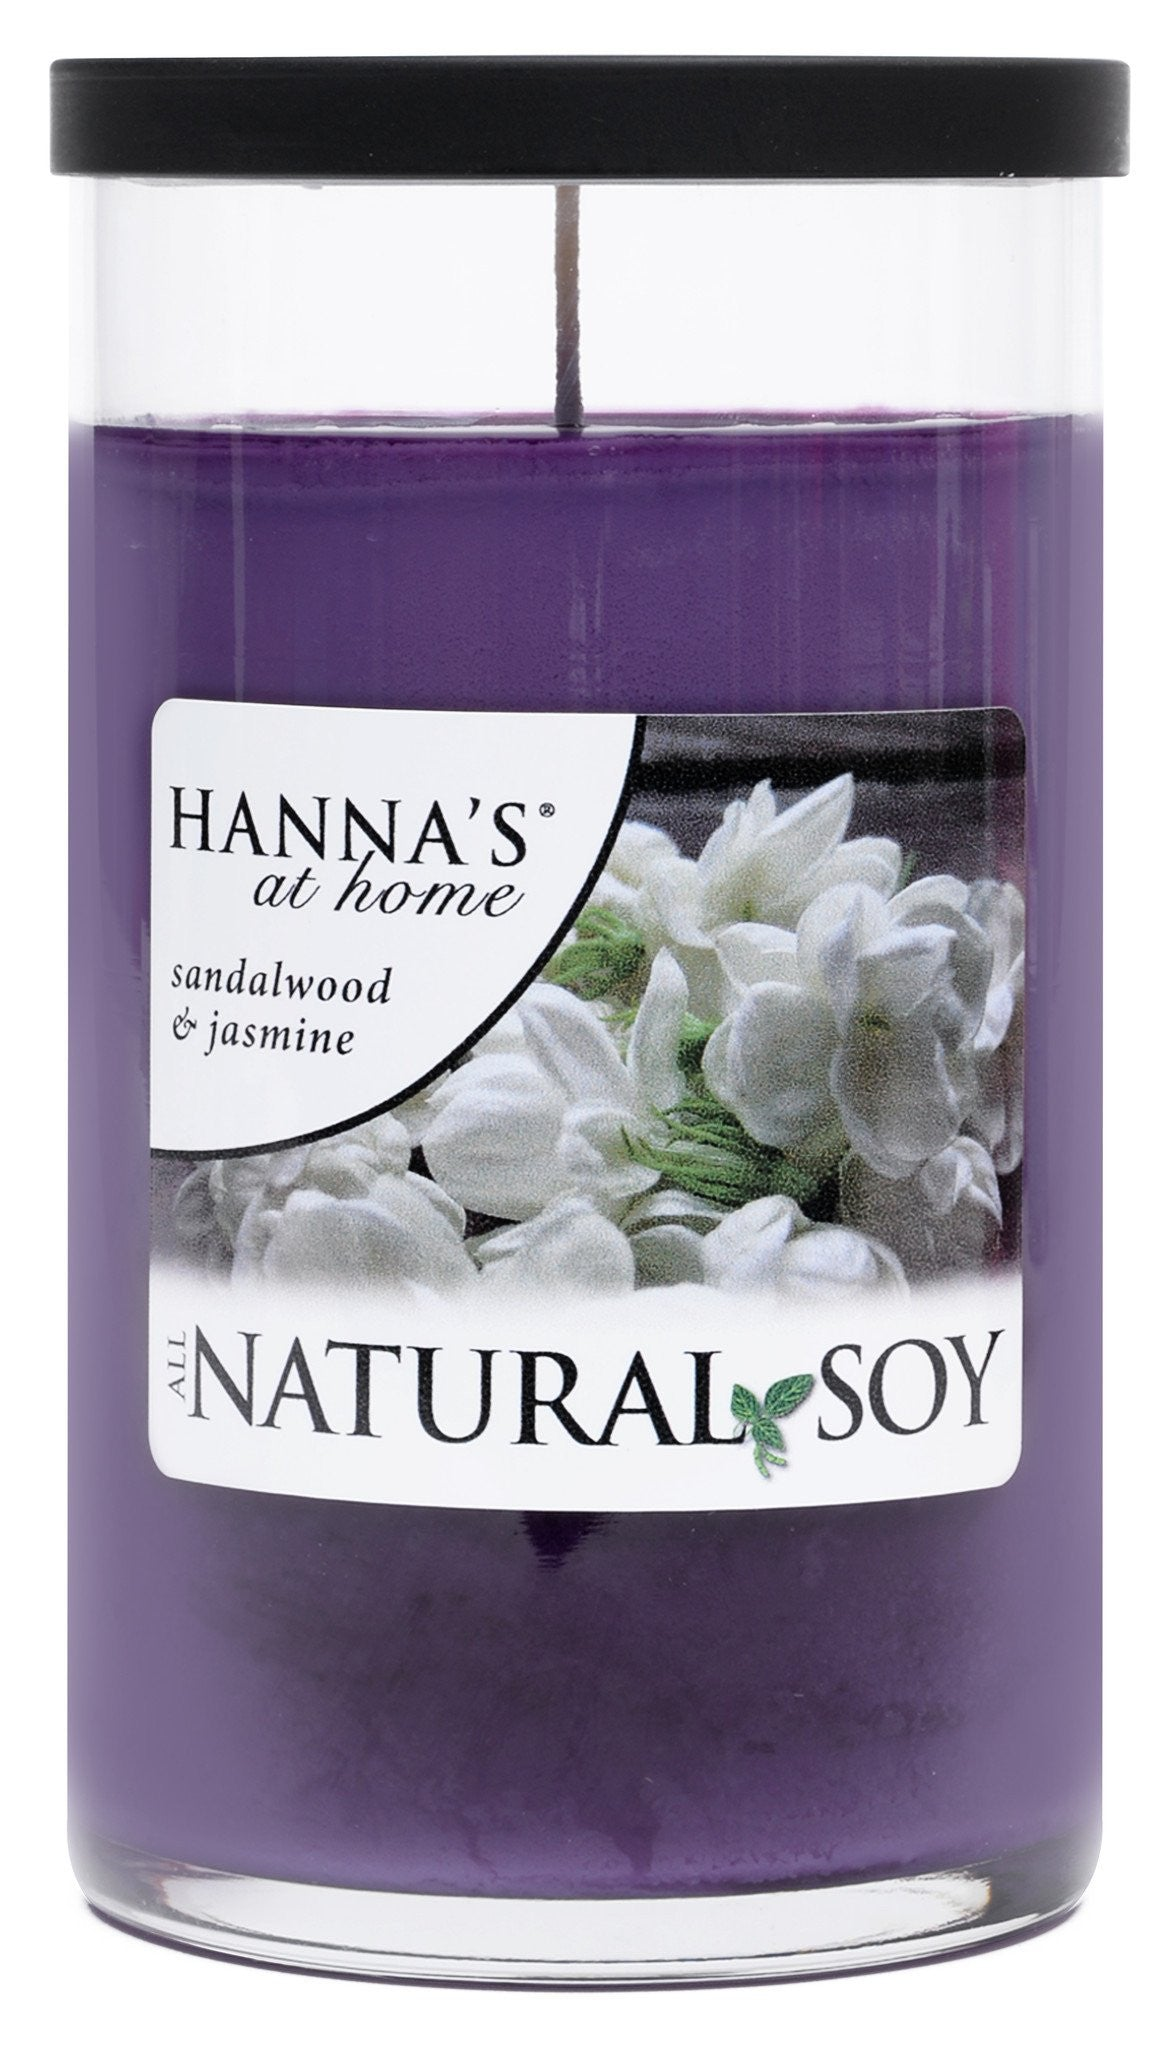 Natural Soy Sandalwood & Jasmine Scented Soy Candle - Candlemart.com